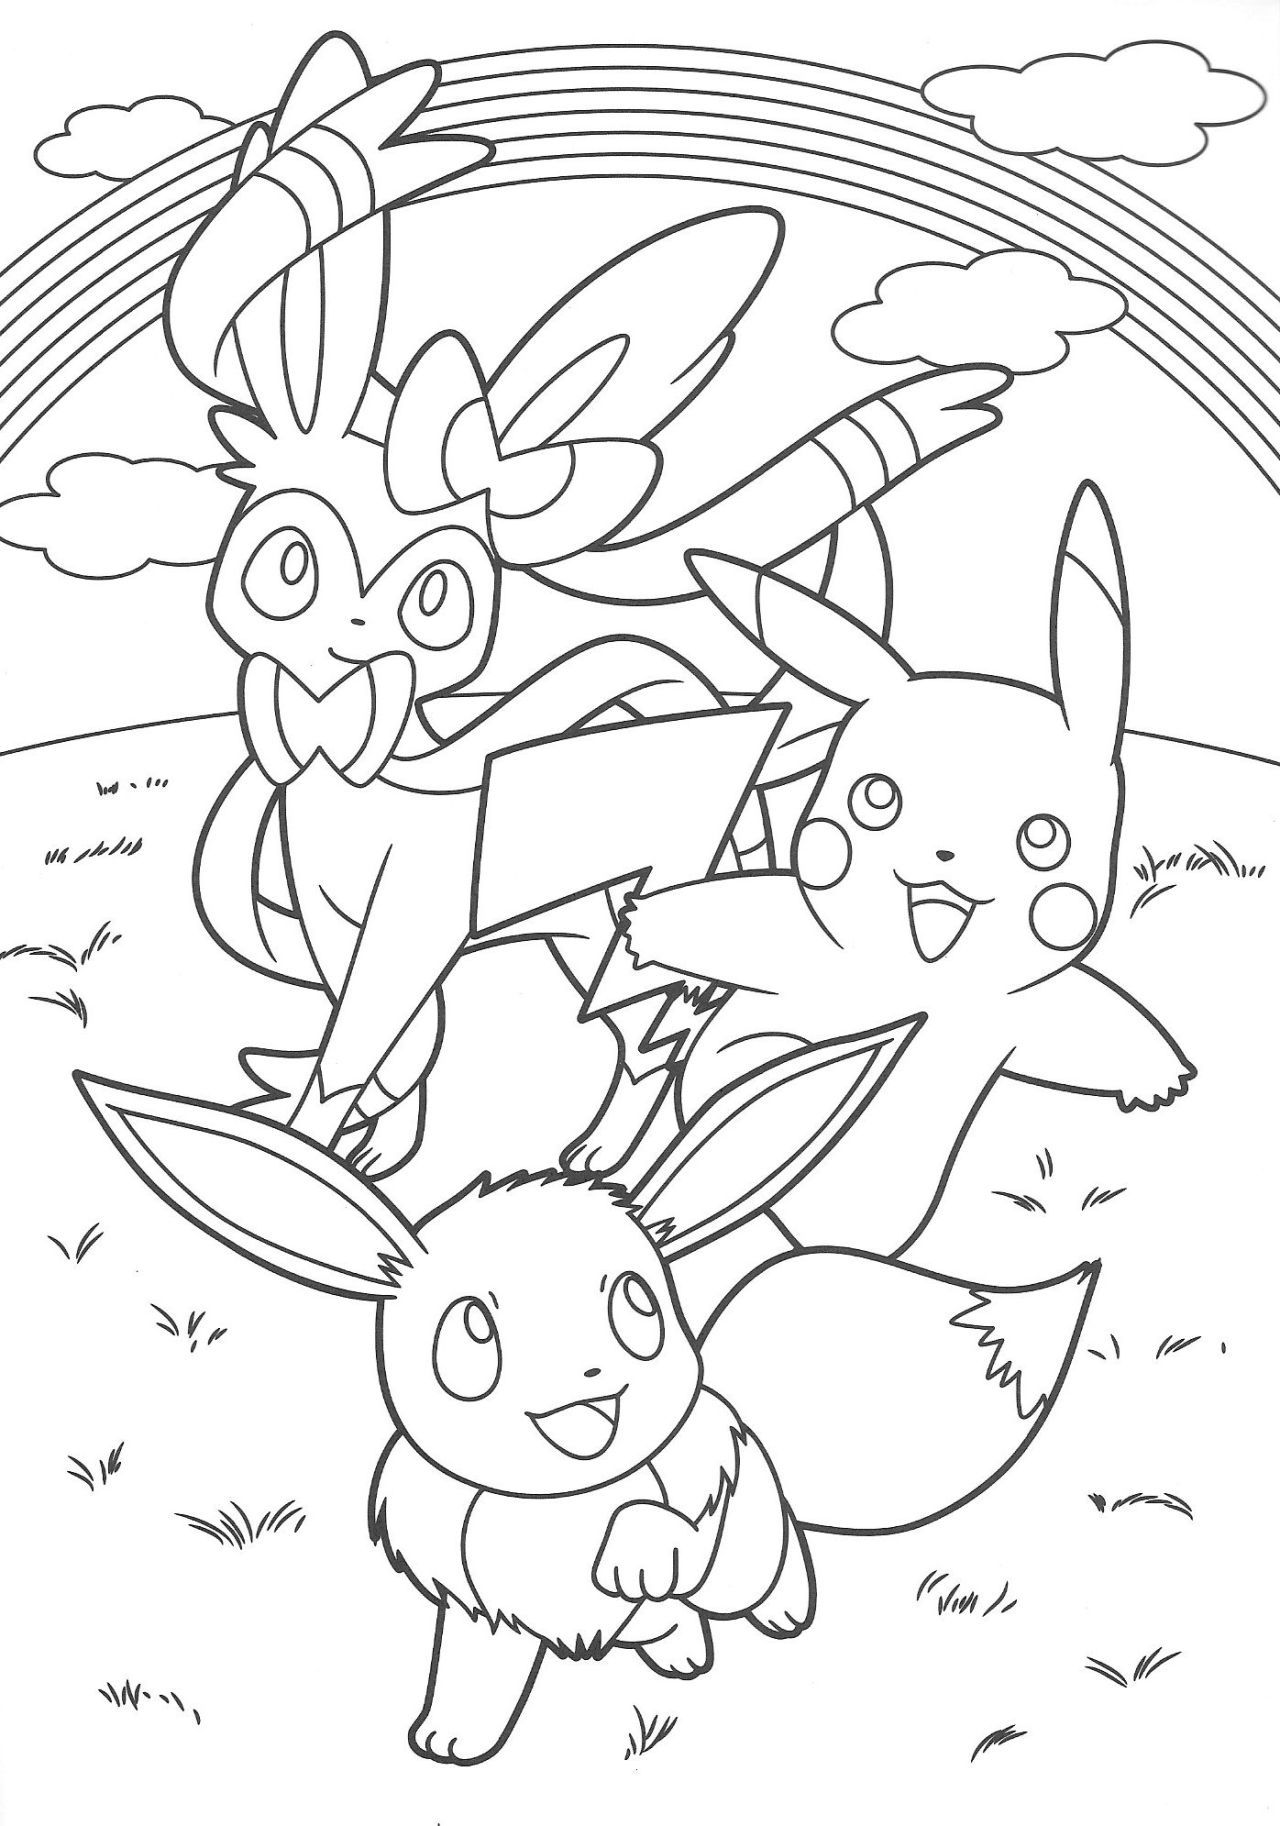 Pokemon Scans From Pacificpikachu S Collection Pikachu And Eevee Friends Coloring Book Pokemon Coloring Pages Pokemon Coloring Sheets Pokemon Coloring